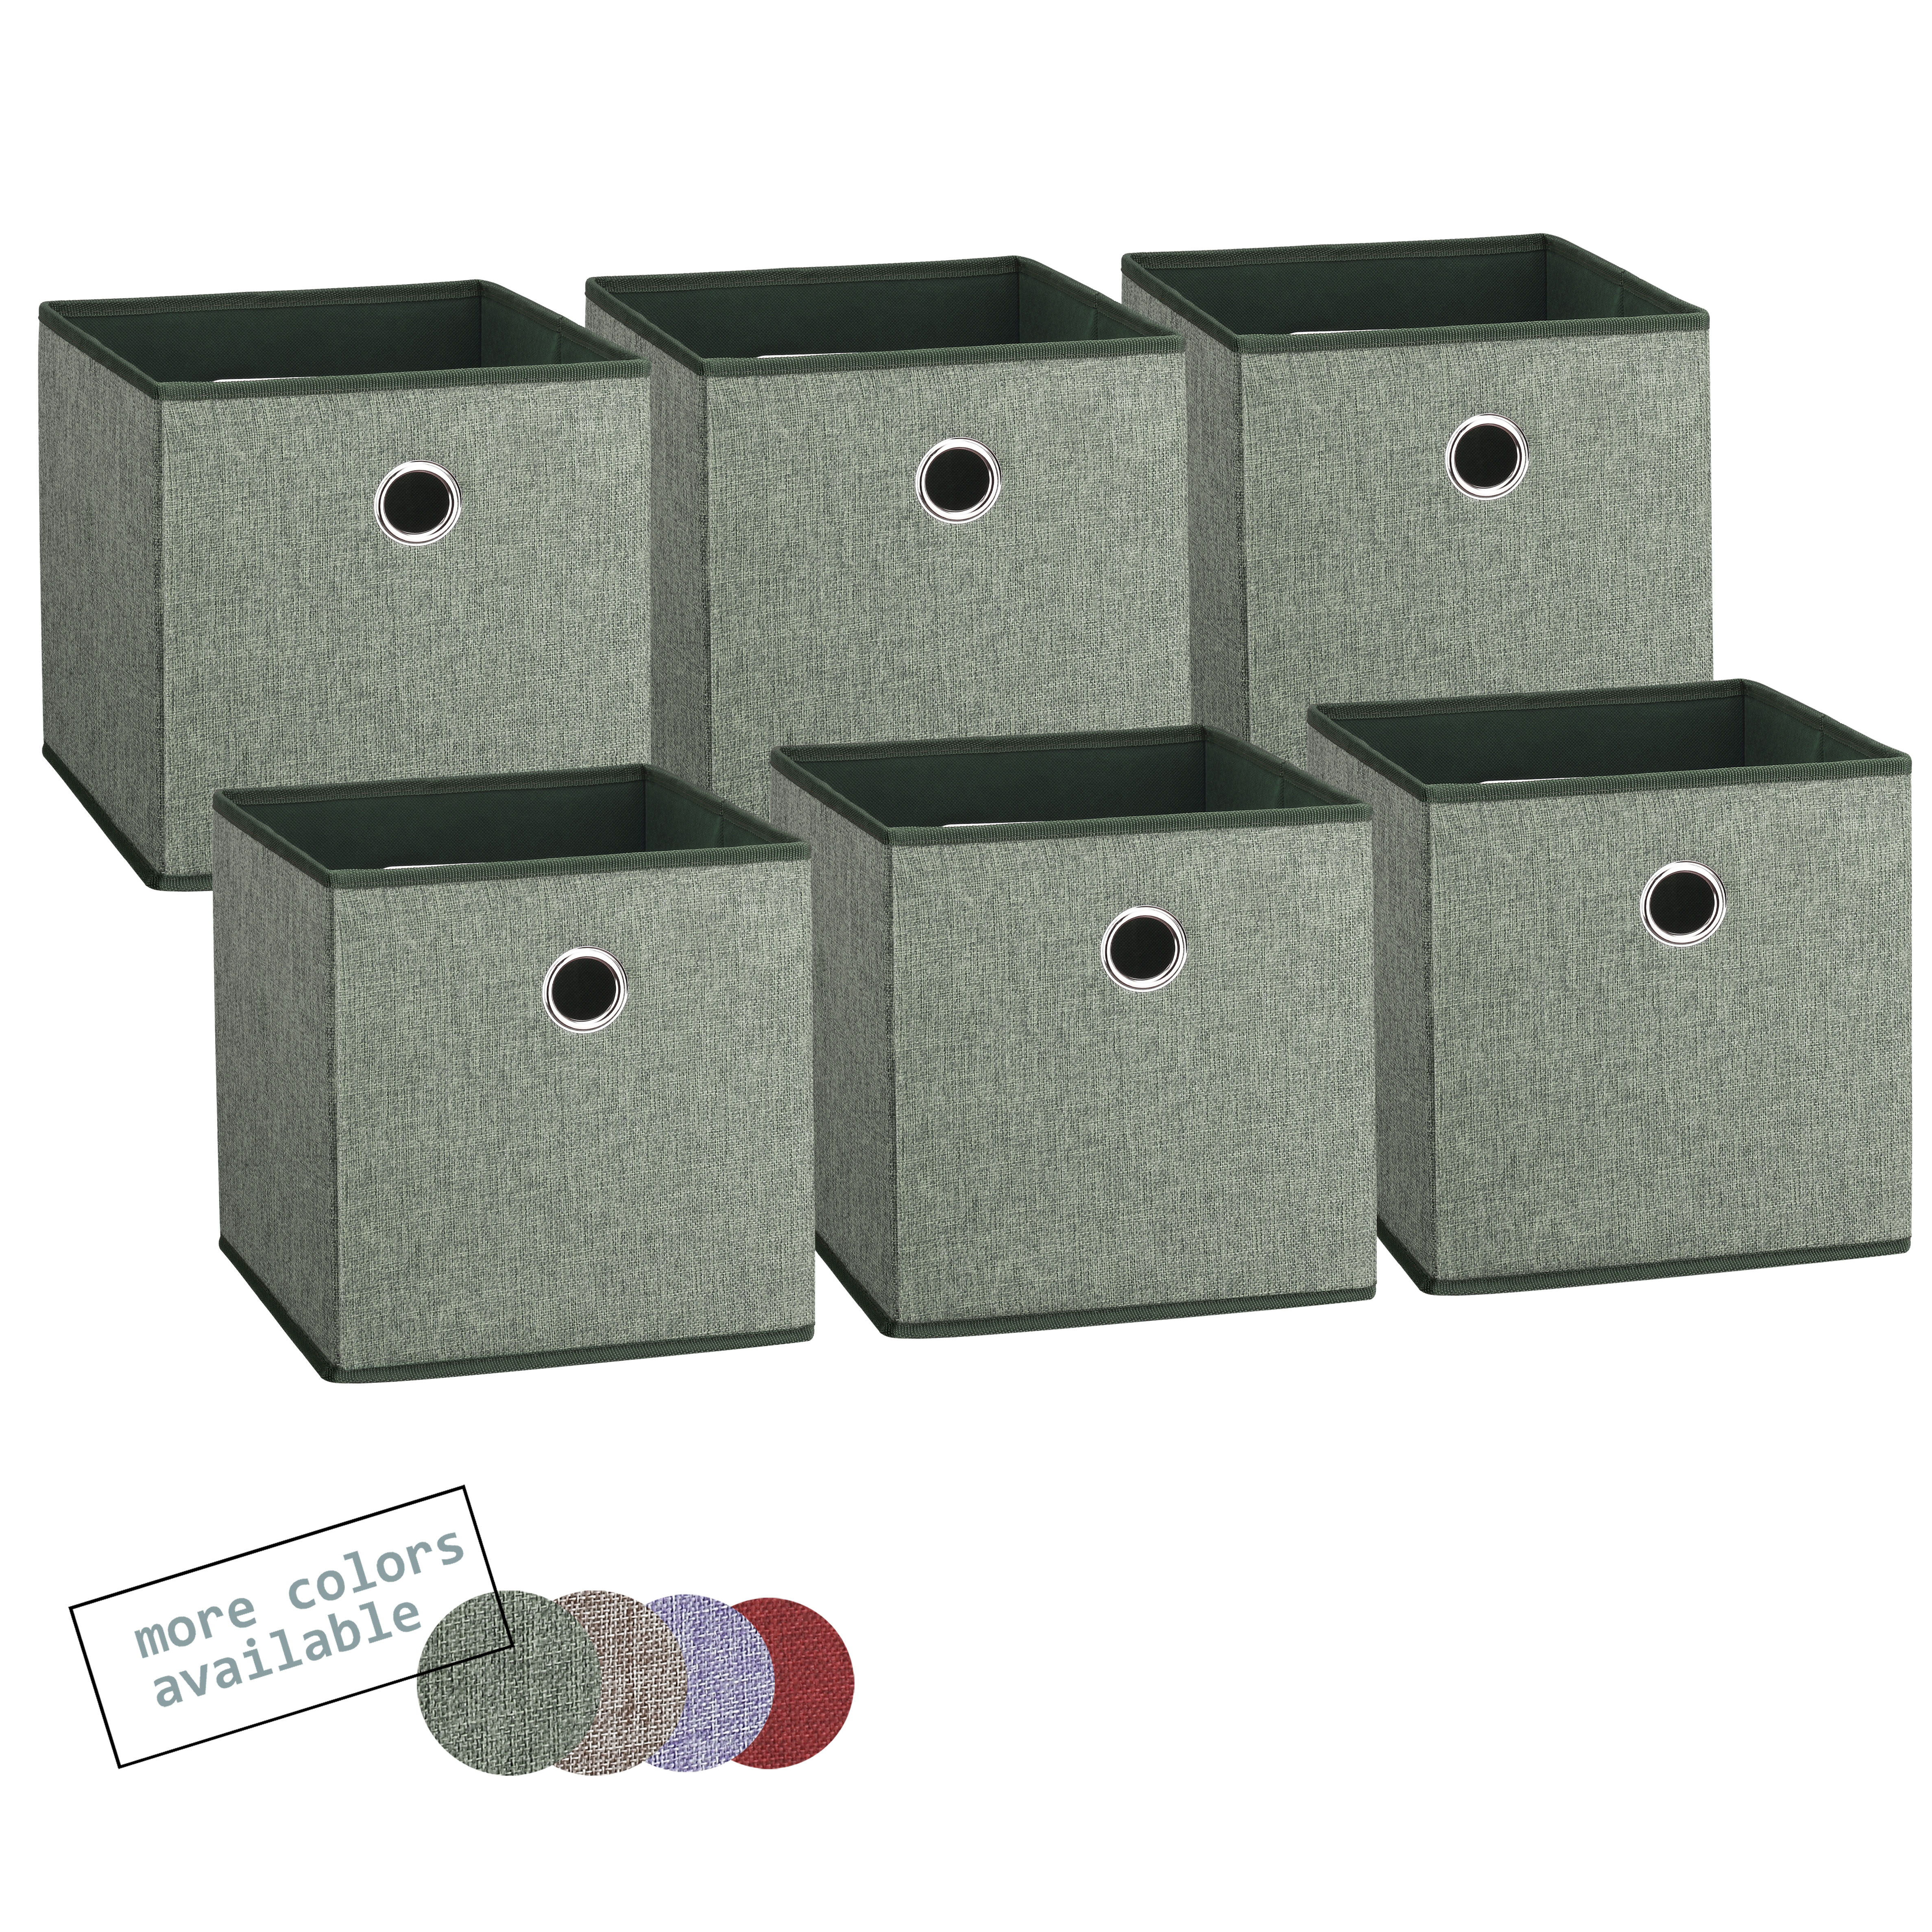 Foldable fabric storage cubes green